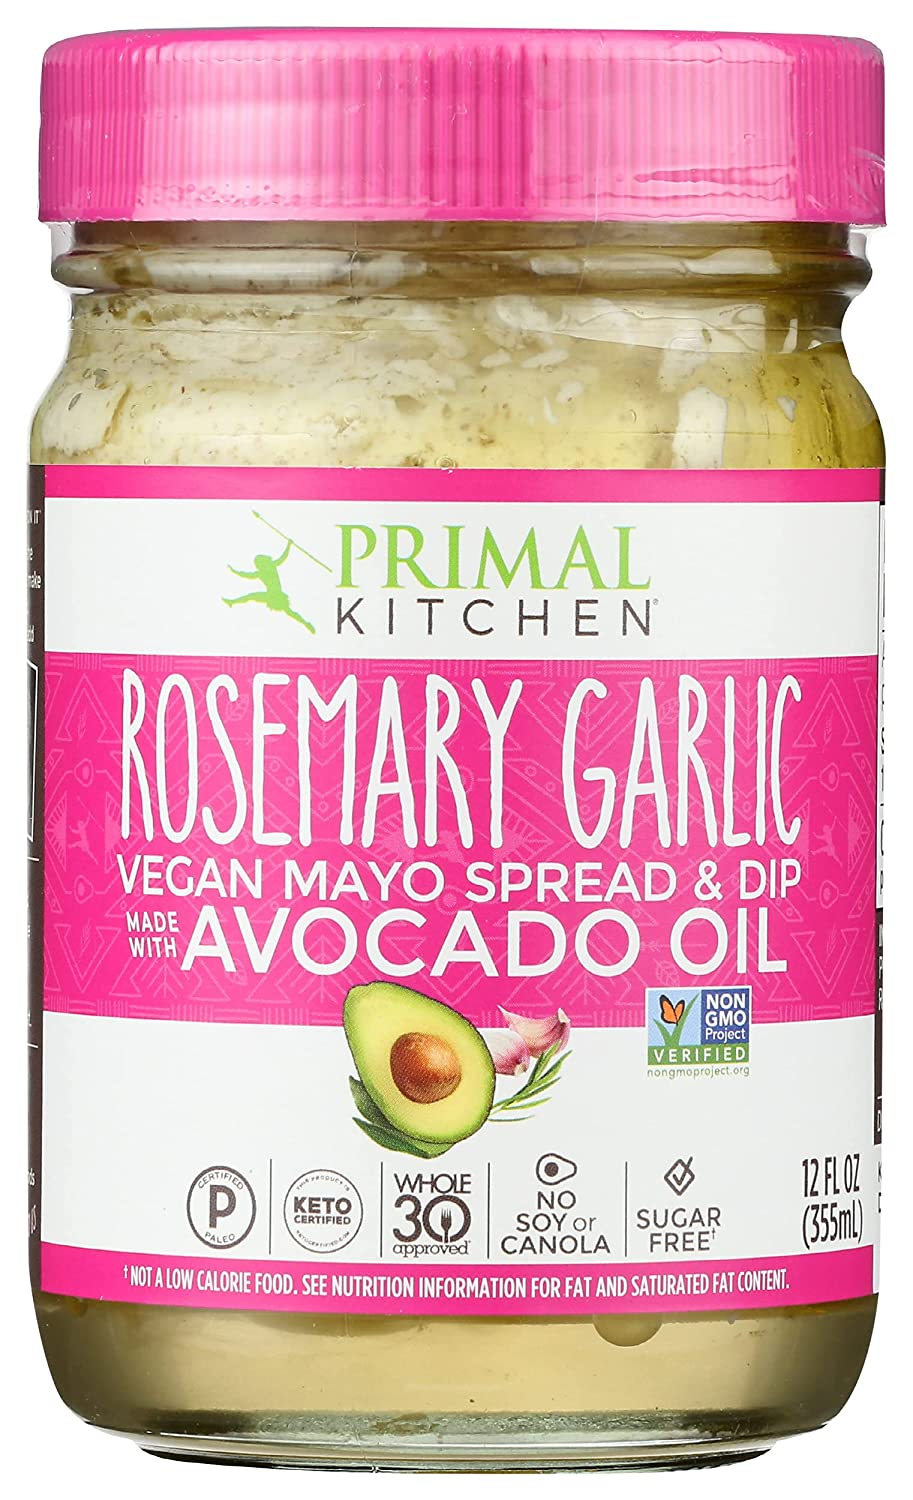 Primal Kitchen Rosemary Garlic Limited price Shipping included Avocado FZ 12 Mayo Oil